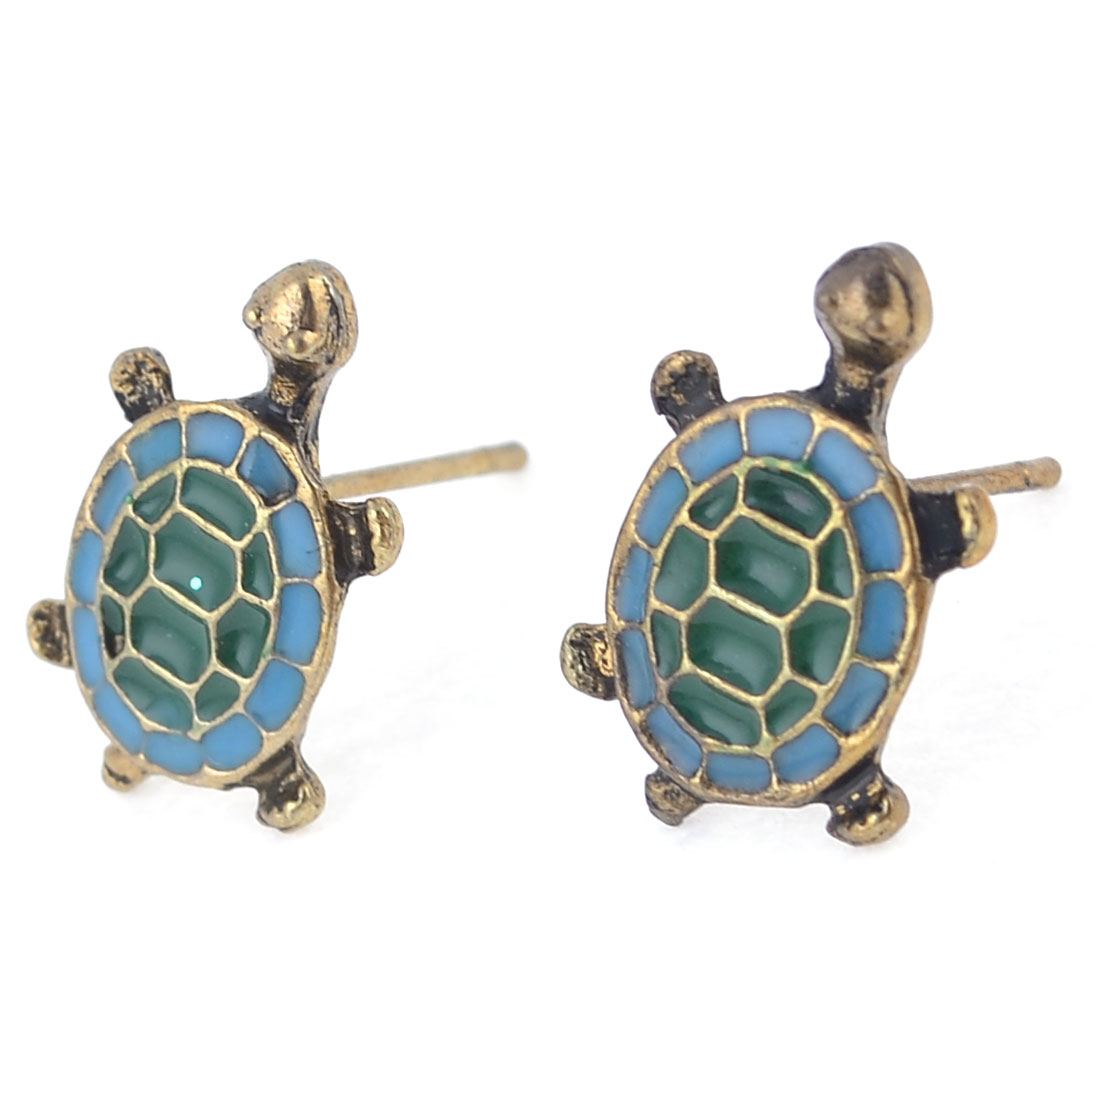 Lady Ear Decor Bronze Tone Blue Tortoise Design Stud Earrings Pair